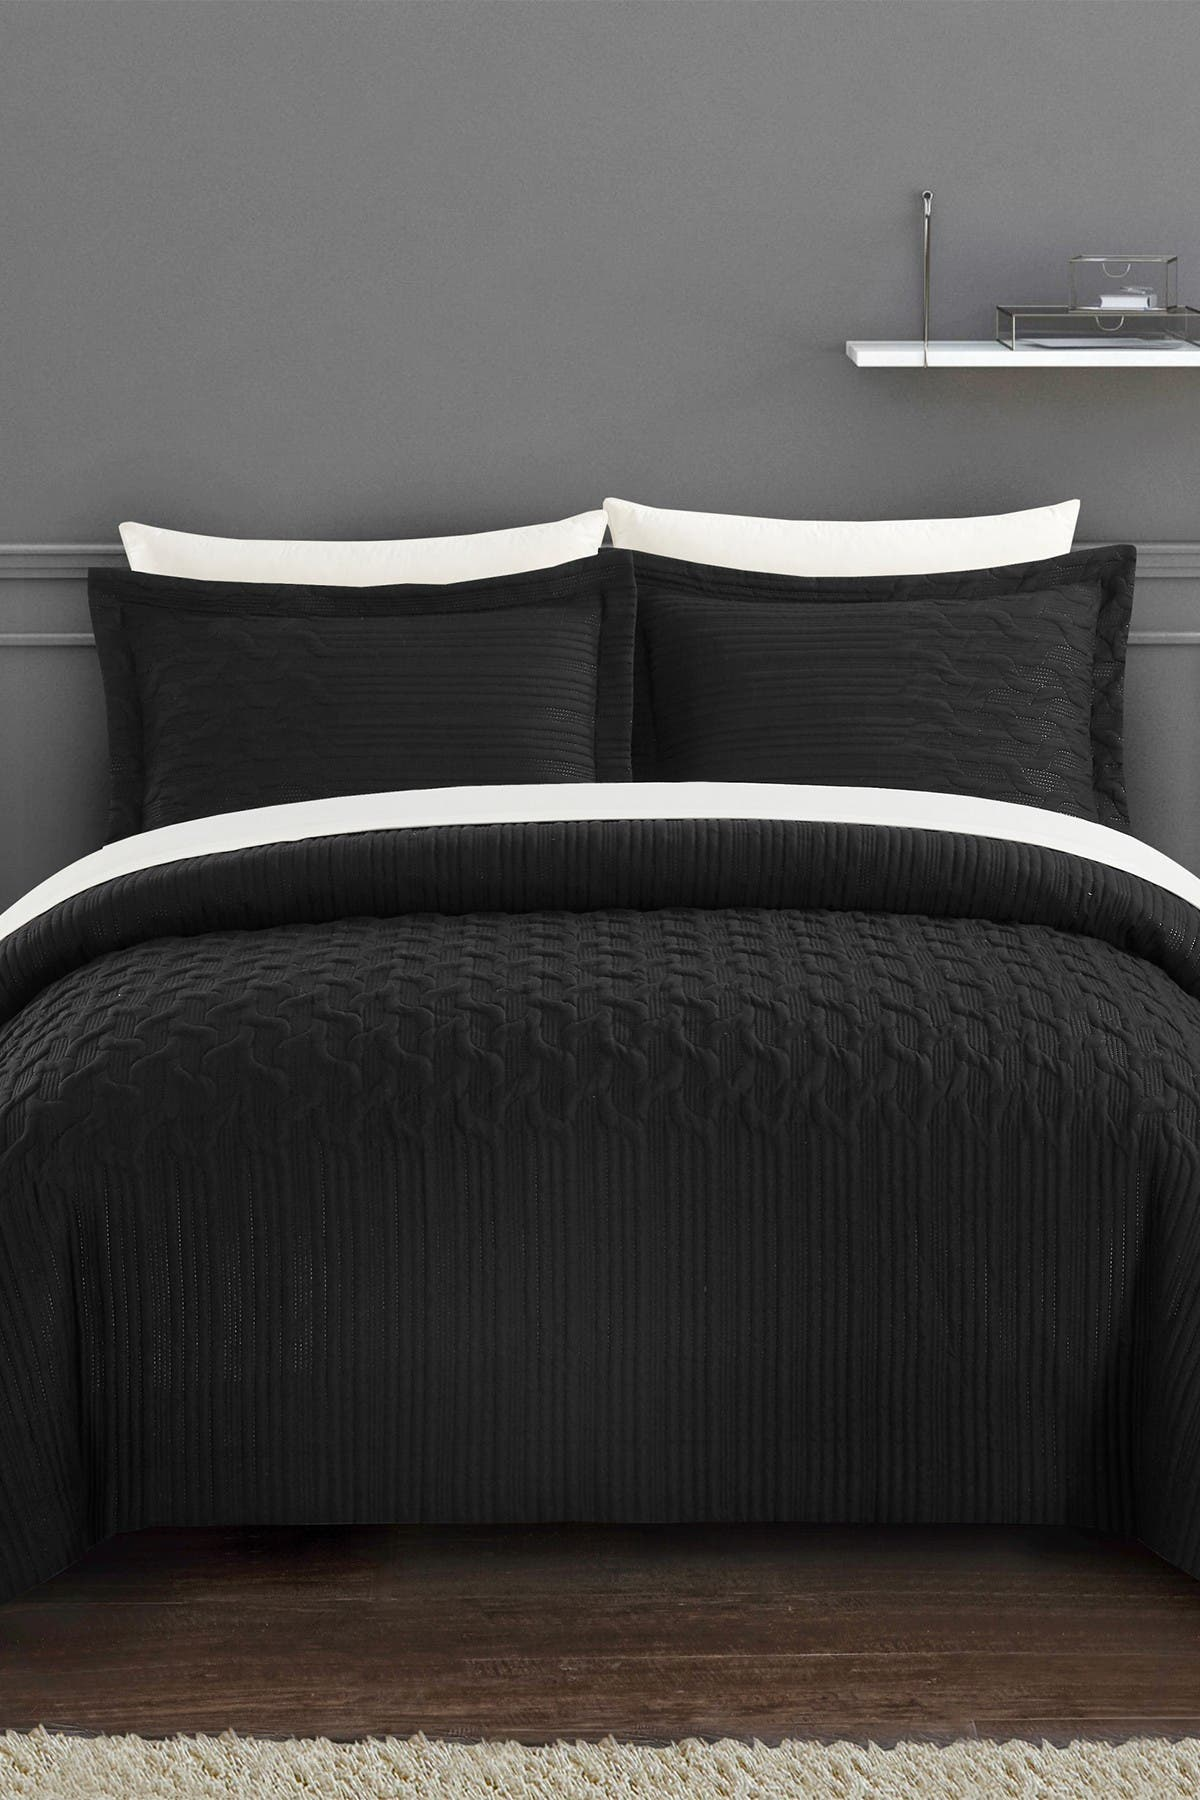 Chic Home Bedding Jazmaine Embossed Embroidered Geometric Interlaced Pattern Twin Comforter Set Black Nordstrom Rack